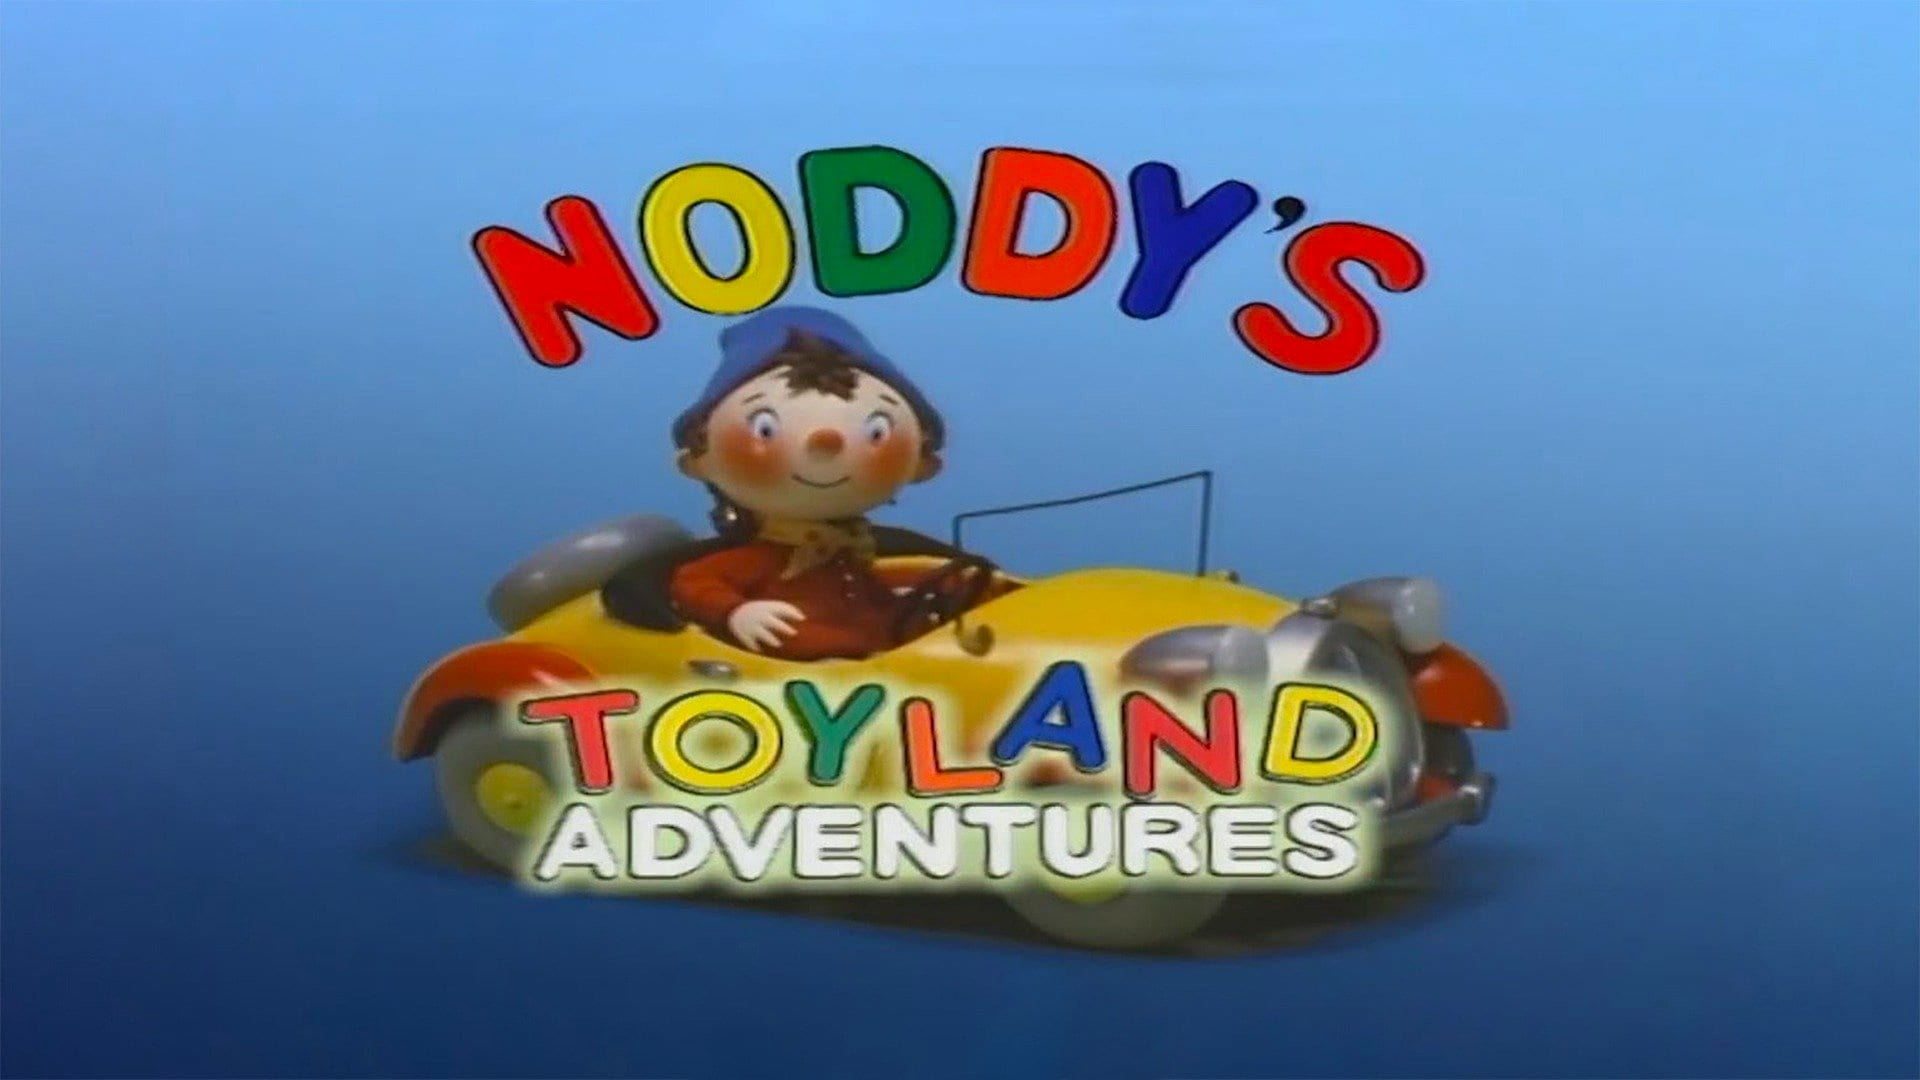 Noddy Gets Caught in a Storm